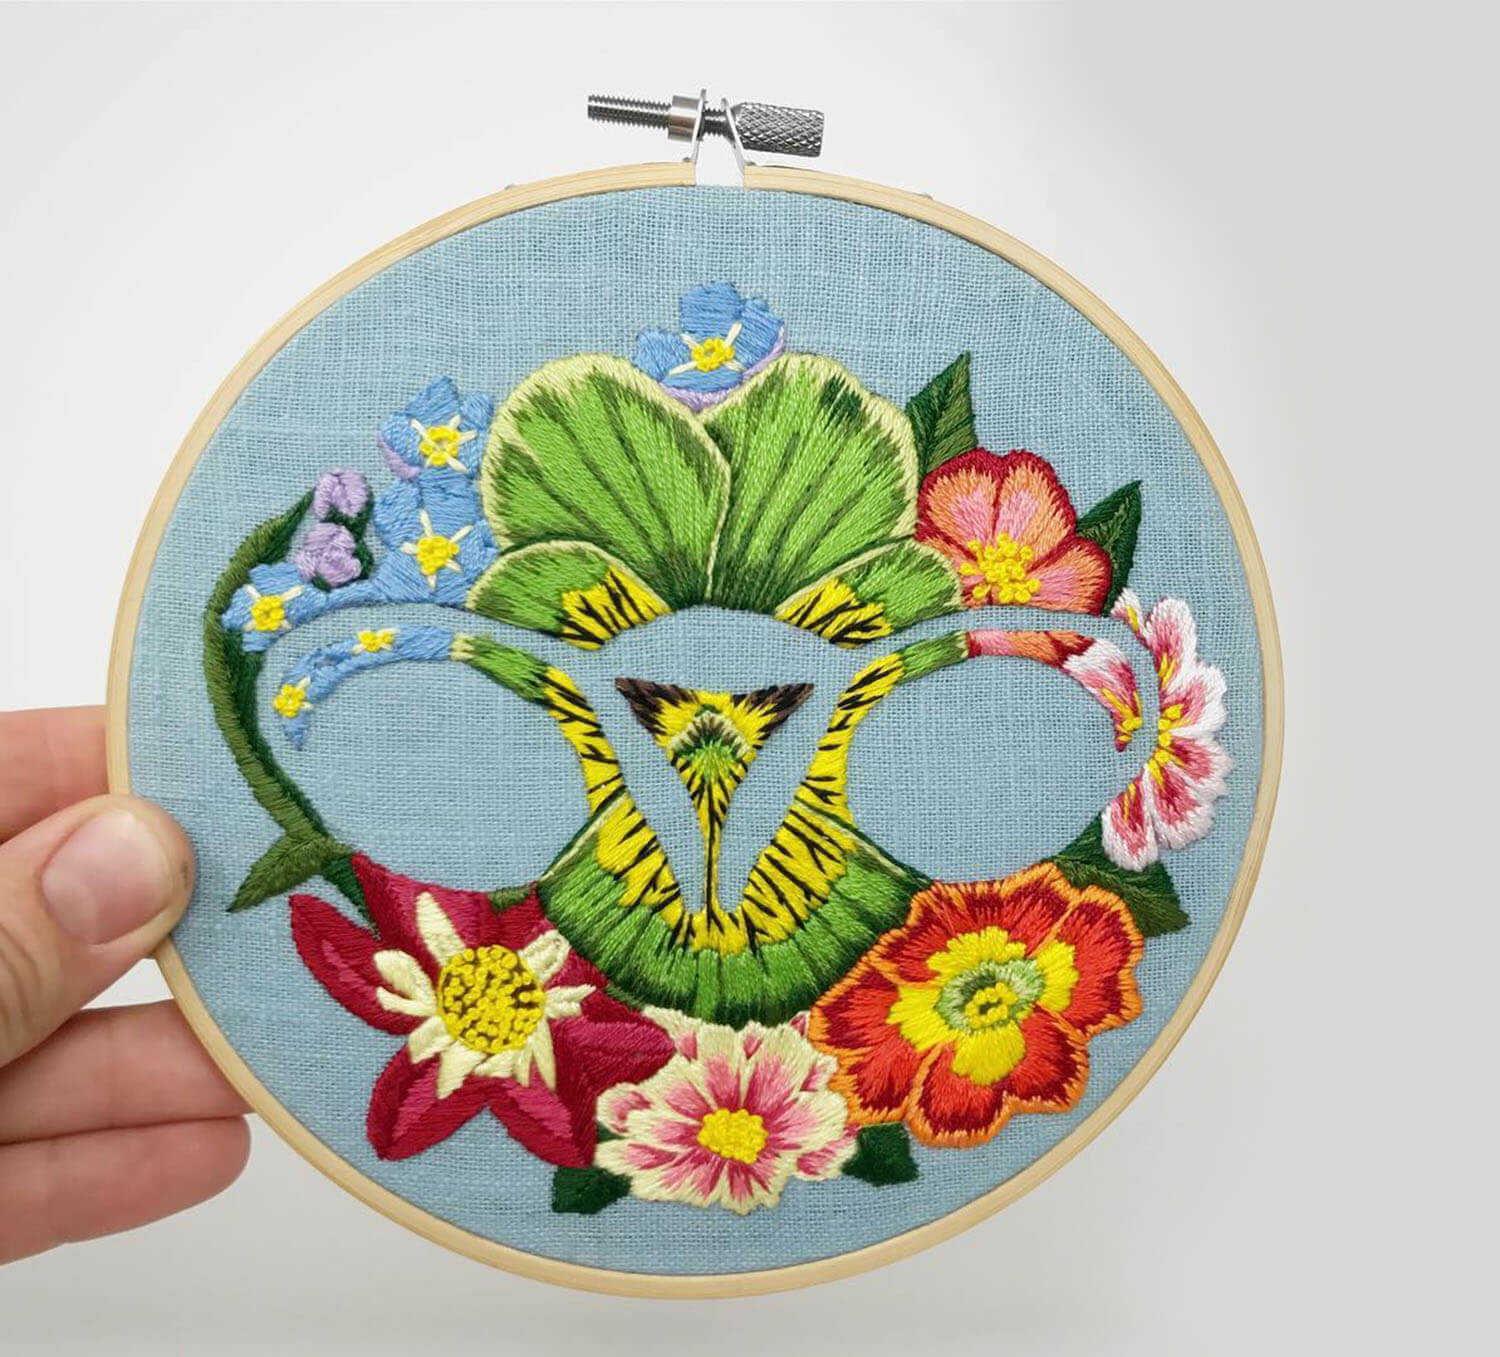 Ovaries embroidery with flower